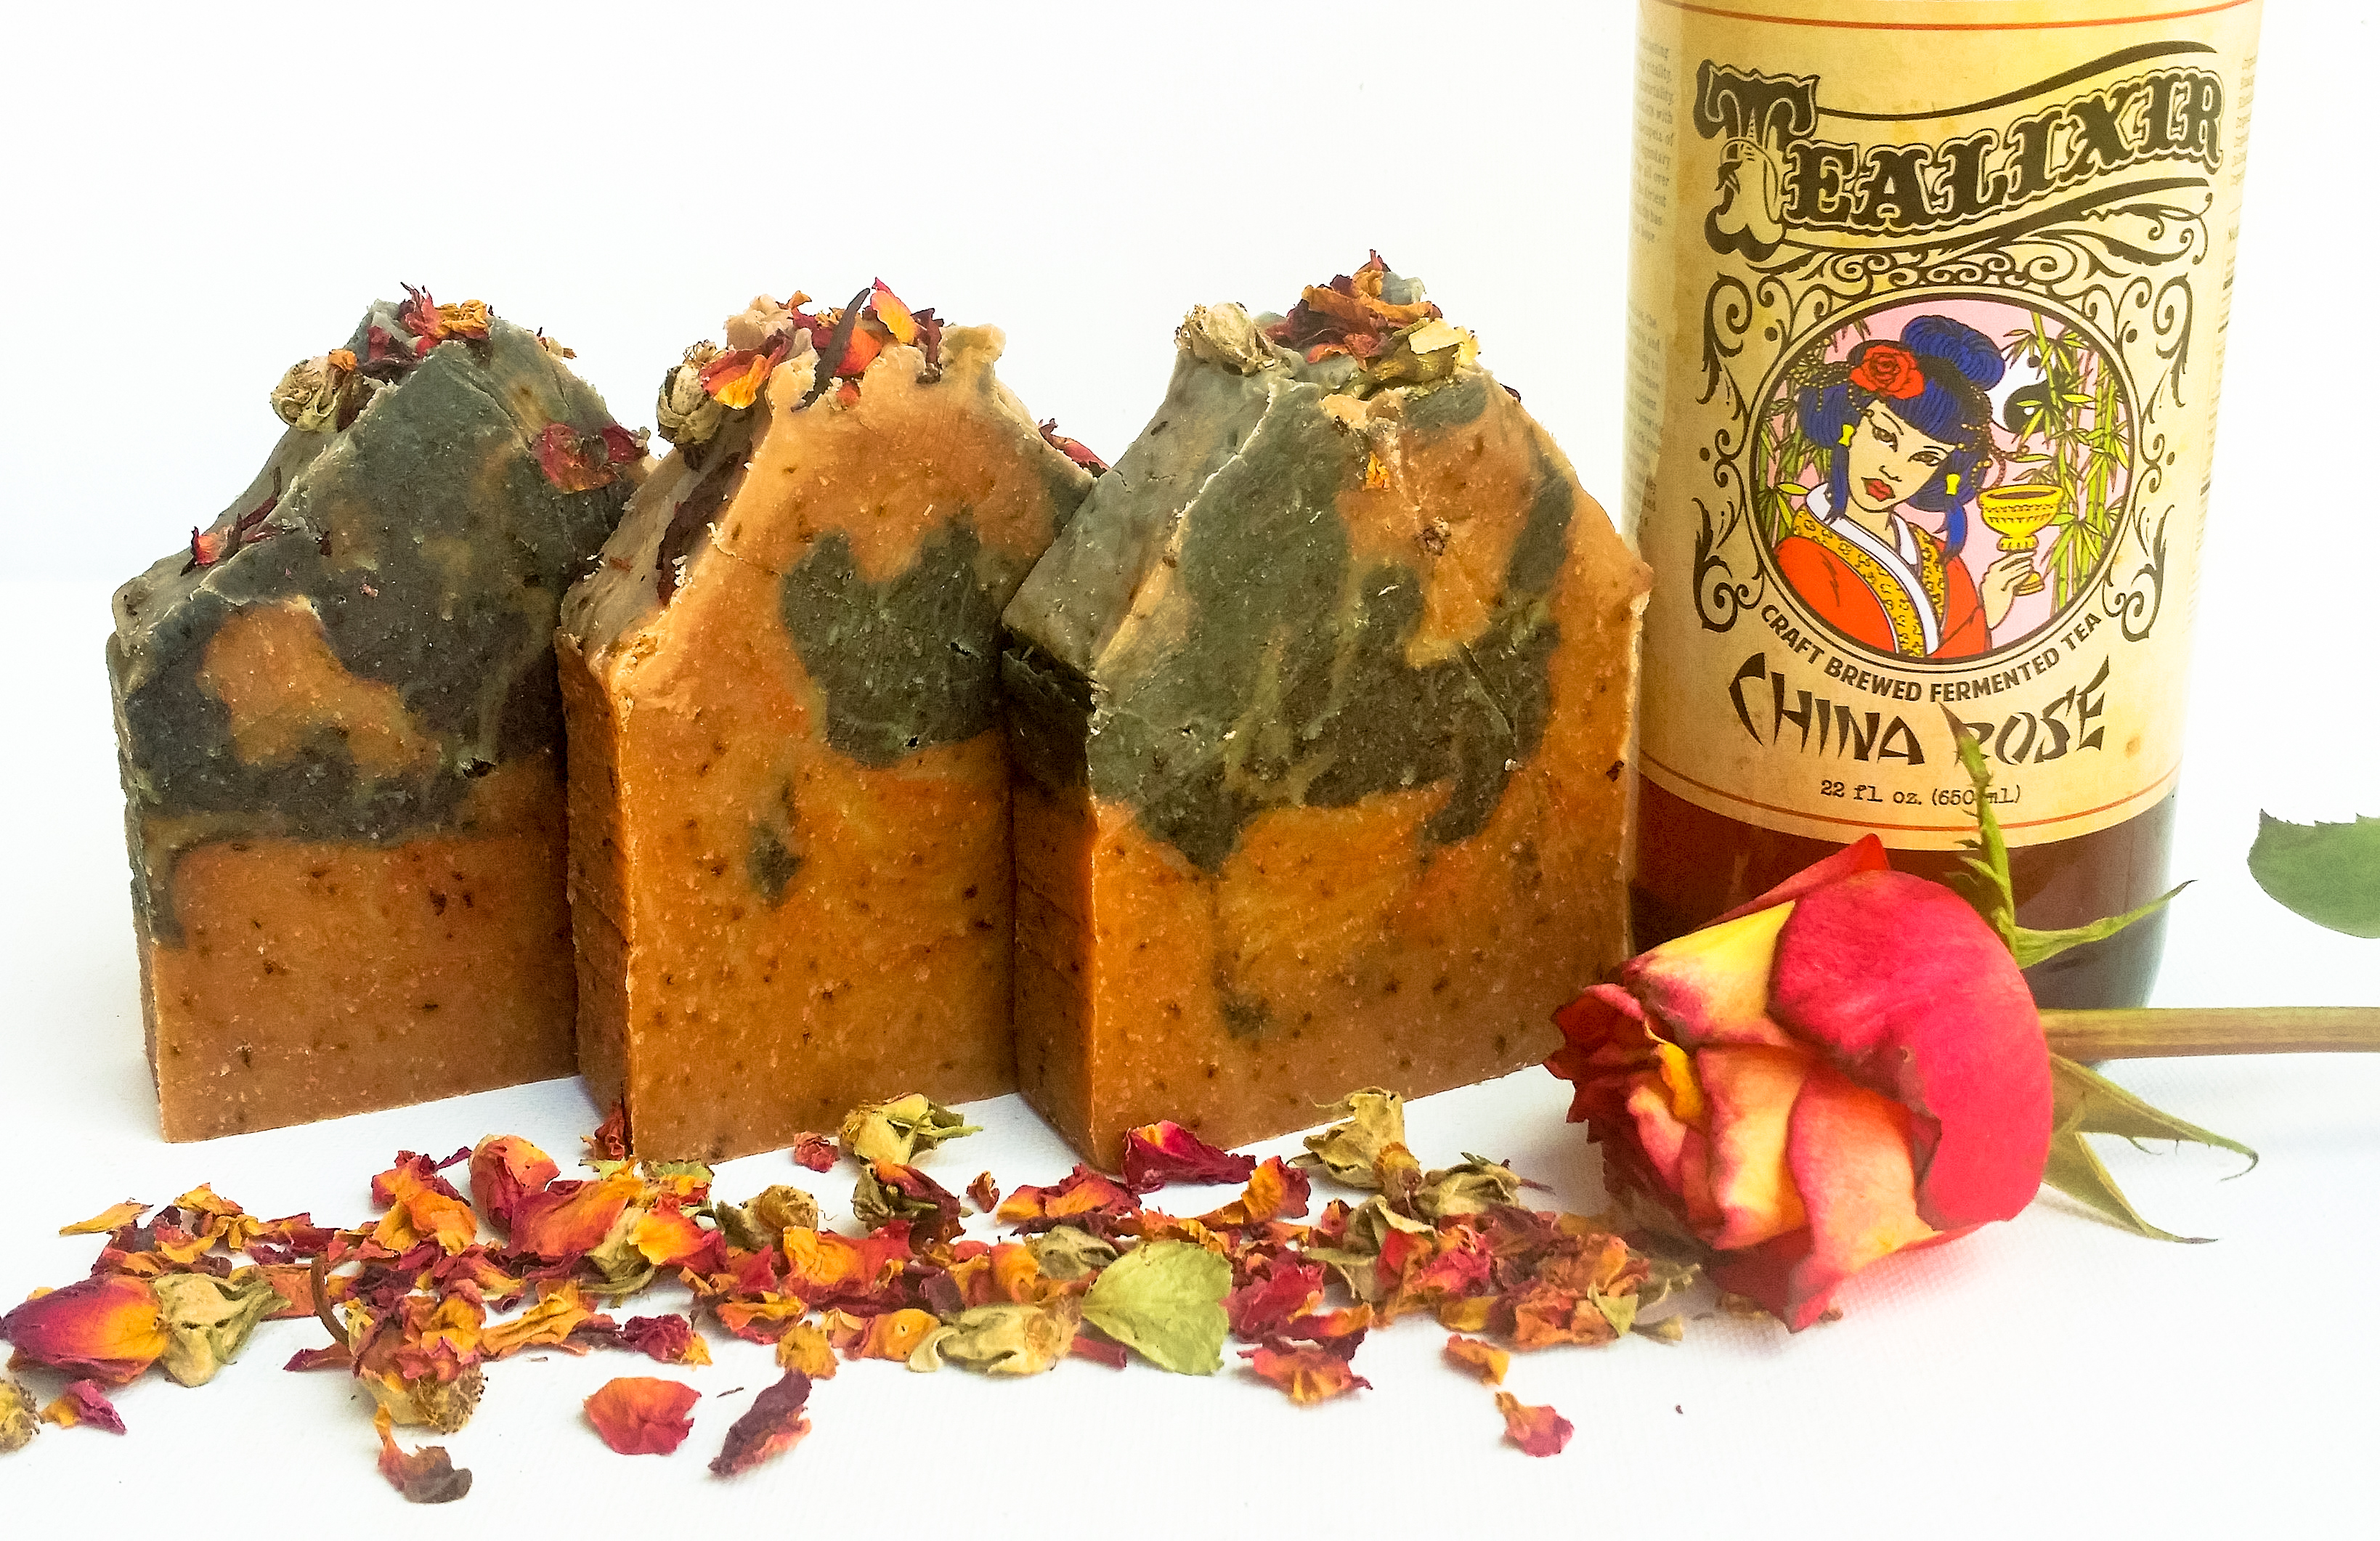 Sugar-And-Oats-3-China-Rose-Kombucha-Soap-Vegan-2.jpg